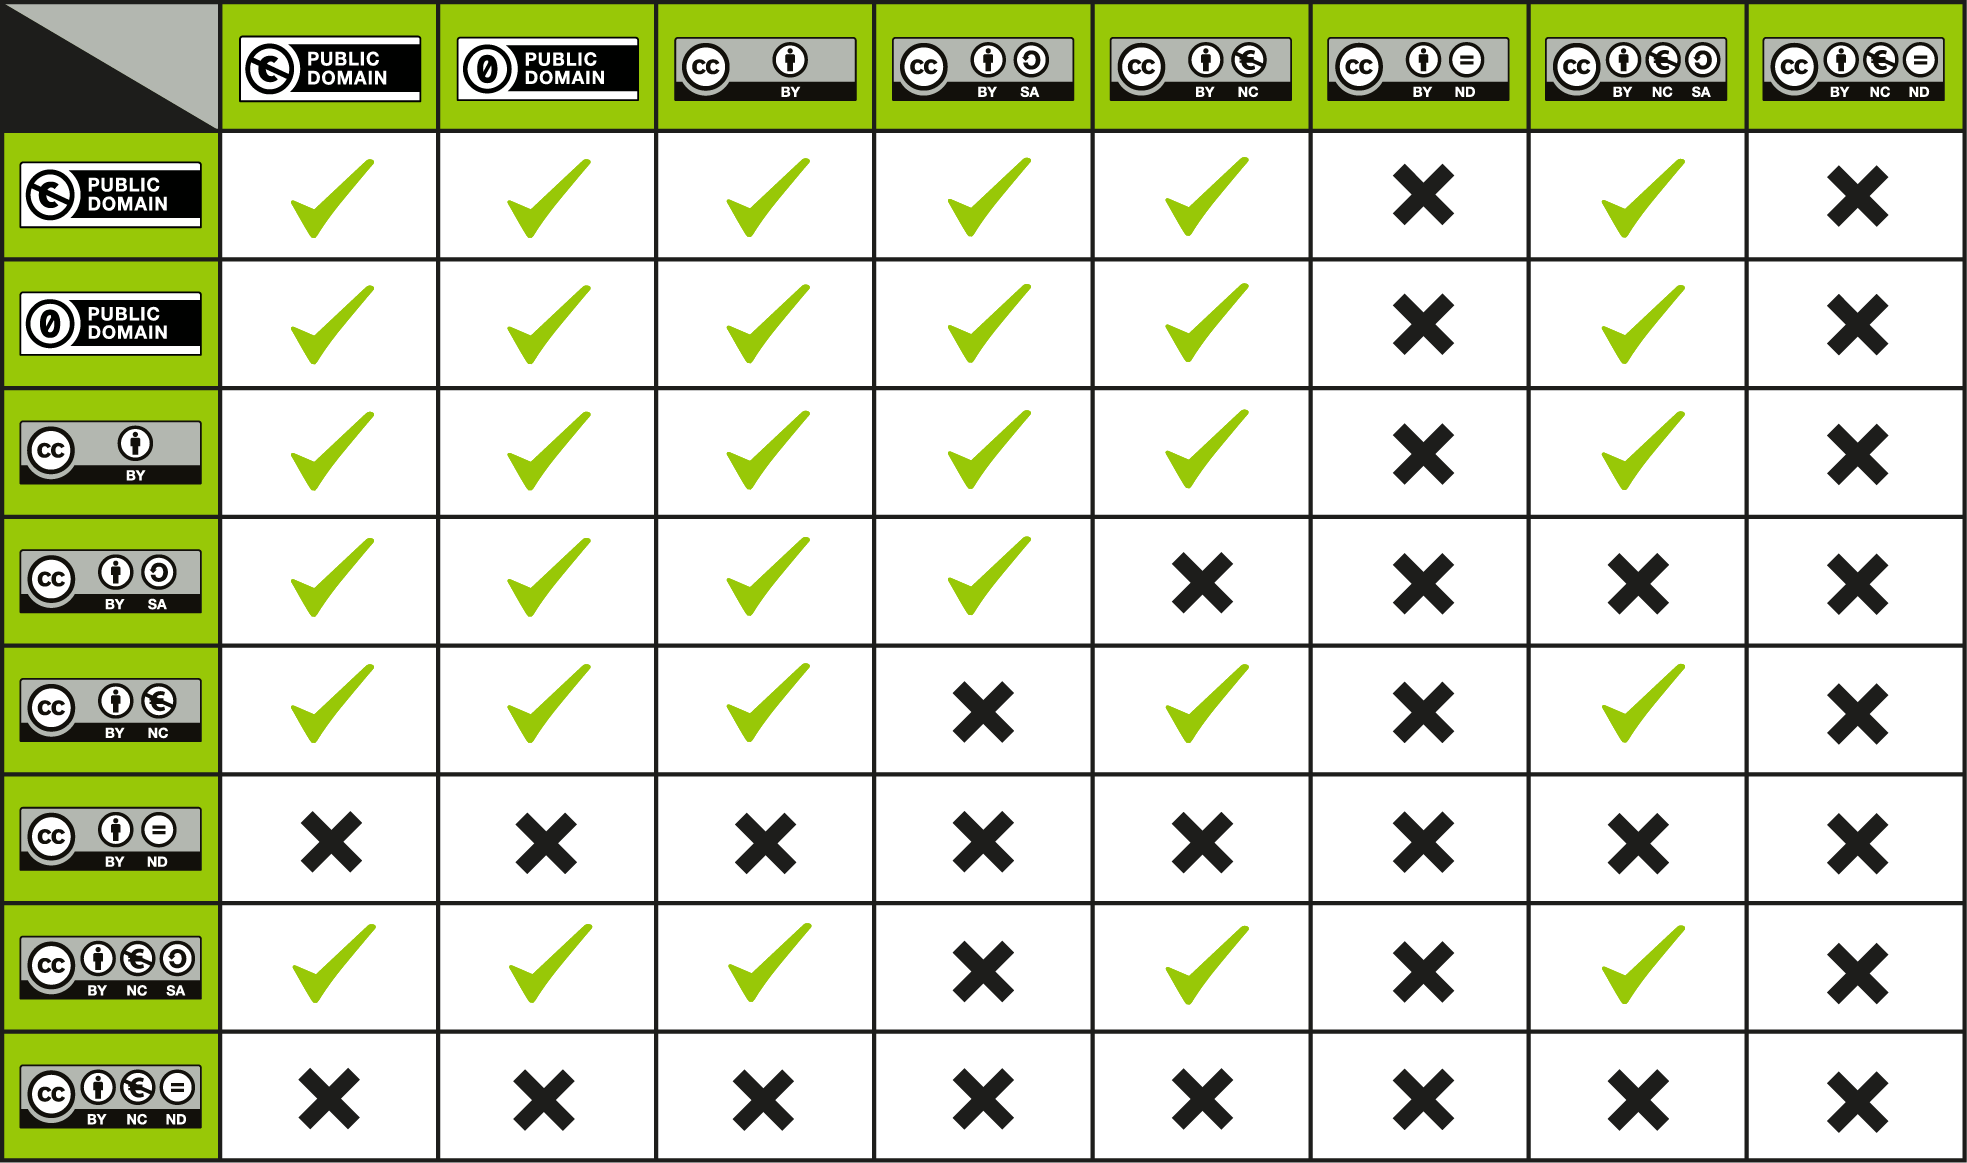 Grid chart showing compatibility of CC licenses